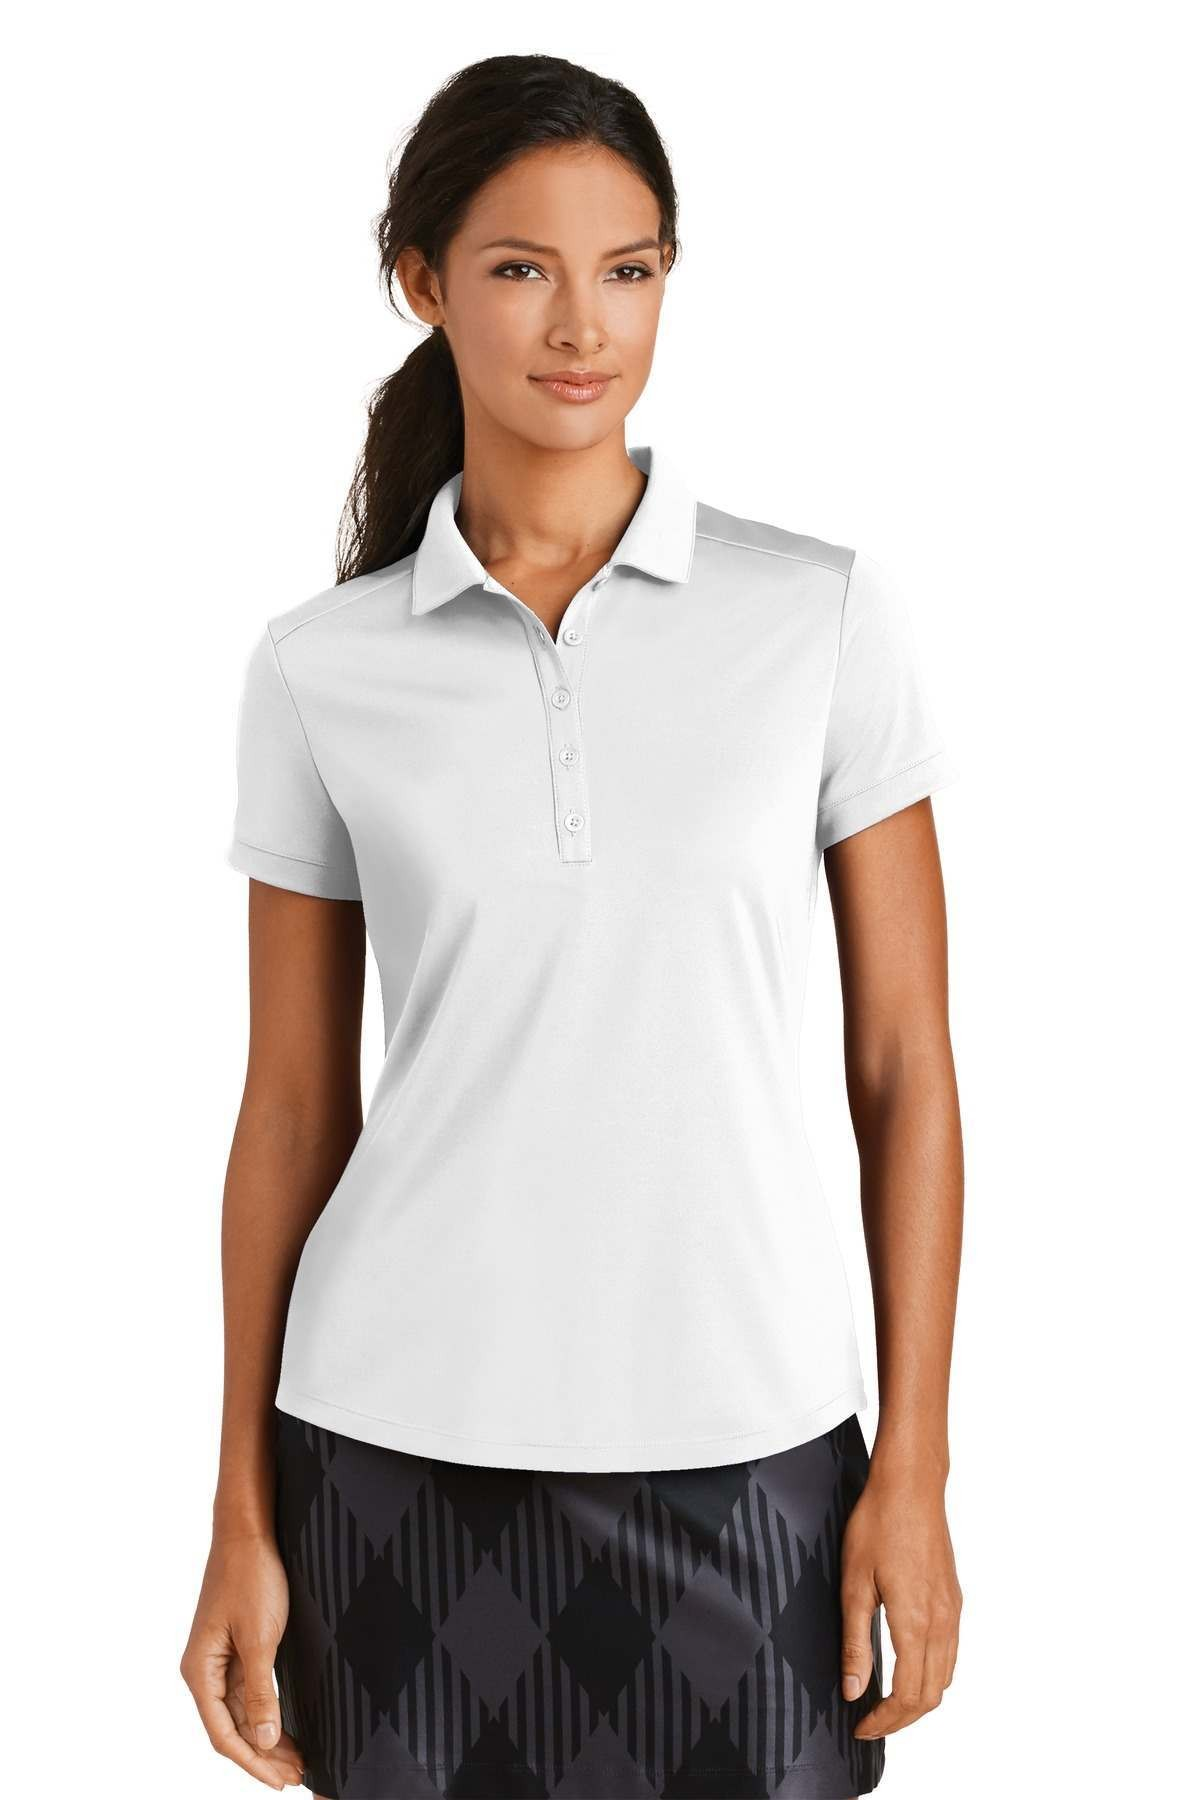 info for 605a3 6e03a Nike Golf Ladies Dri-FIT Players Modern Fit Polo - Shirts - Apparel